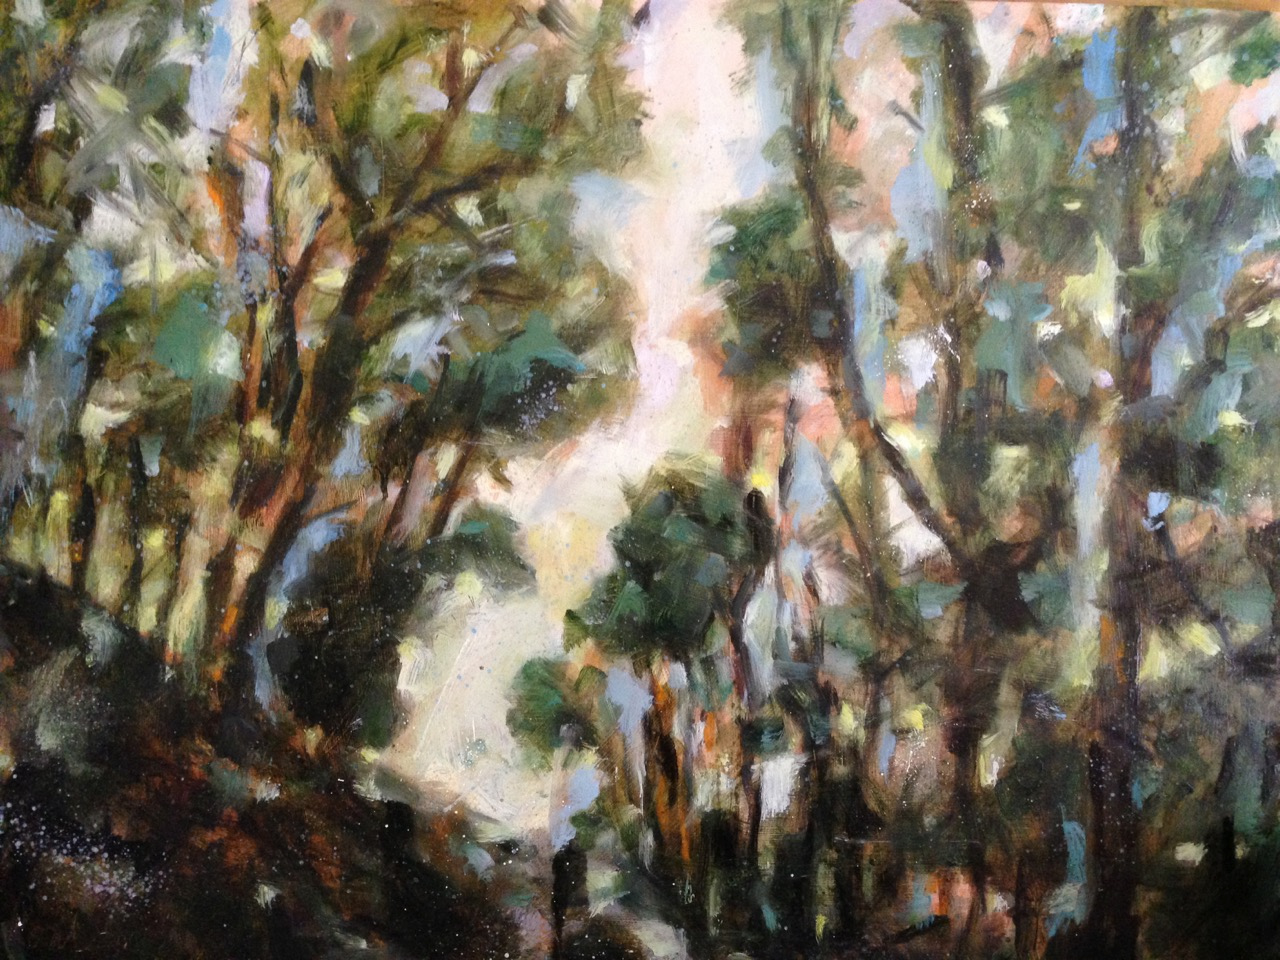 a photograph of an oil painting title 'Tree tunnel near Stoodleigh' by artist Catherine Coulson © 2018 Catherine Coulson